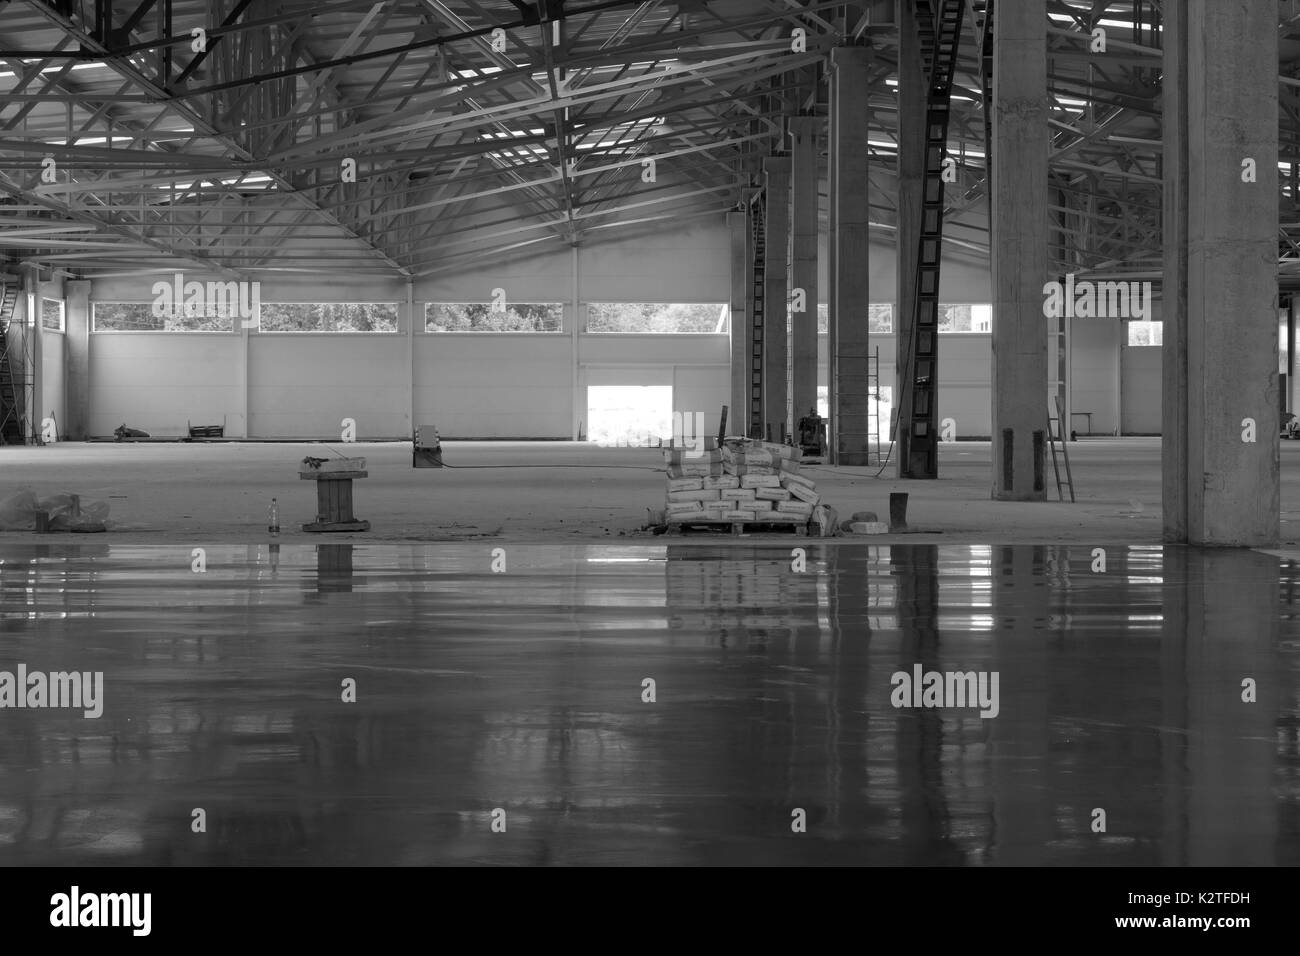 industrial premises in the construction process without people, in black and white - Stock Image